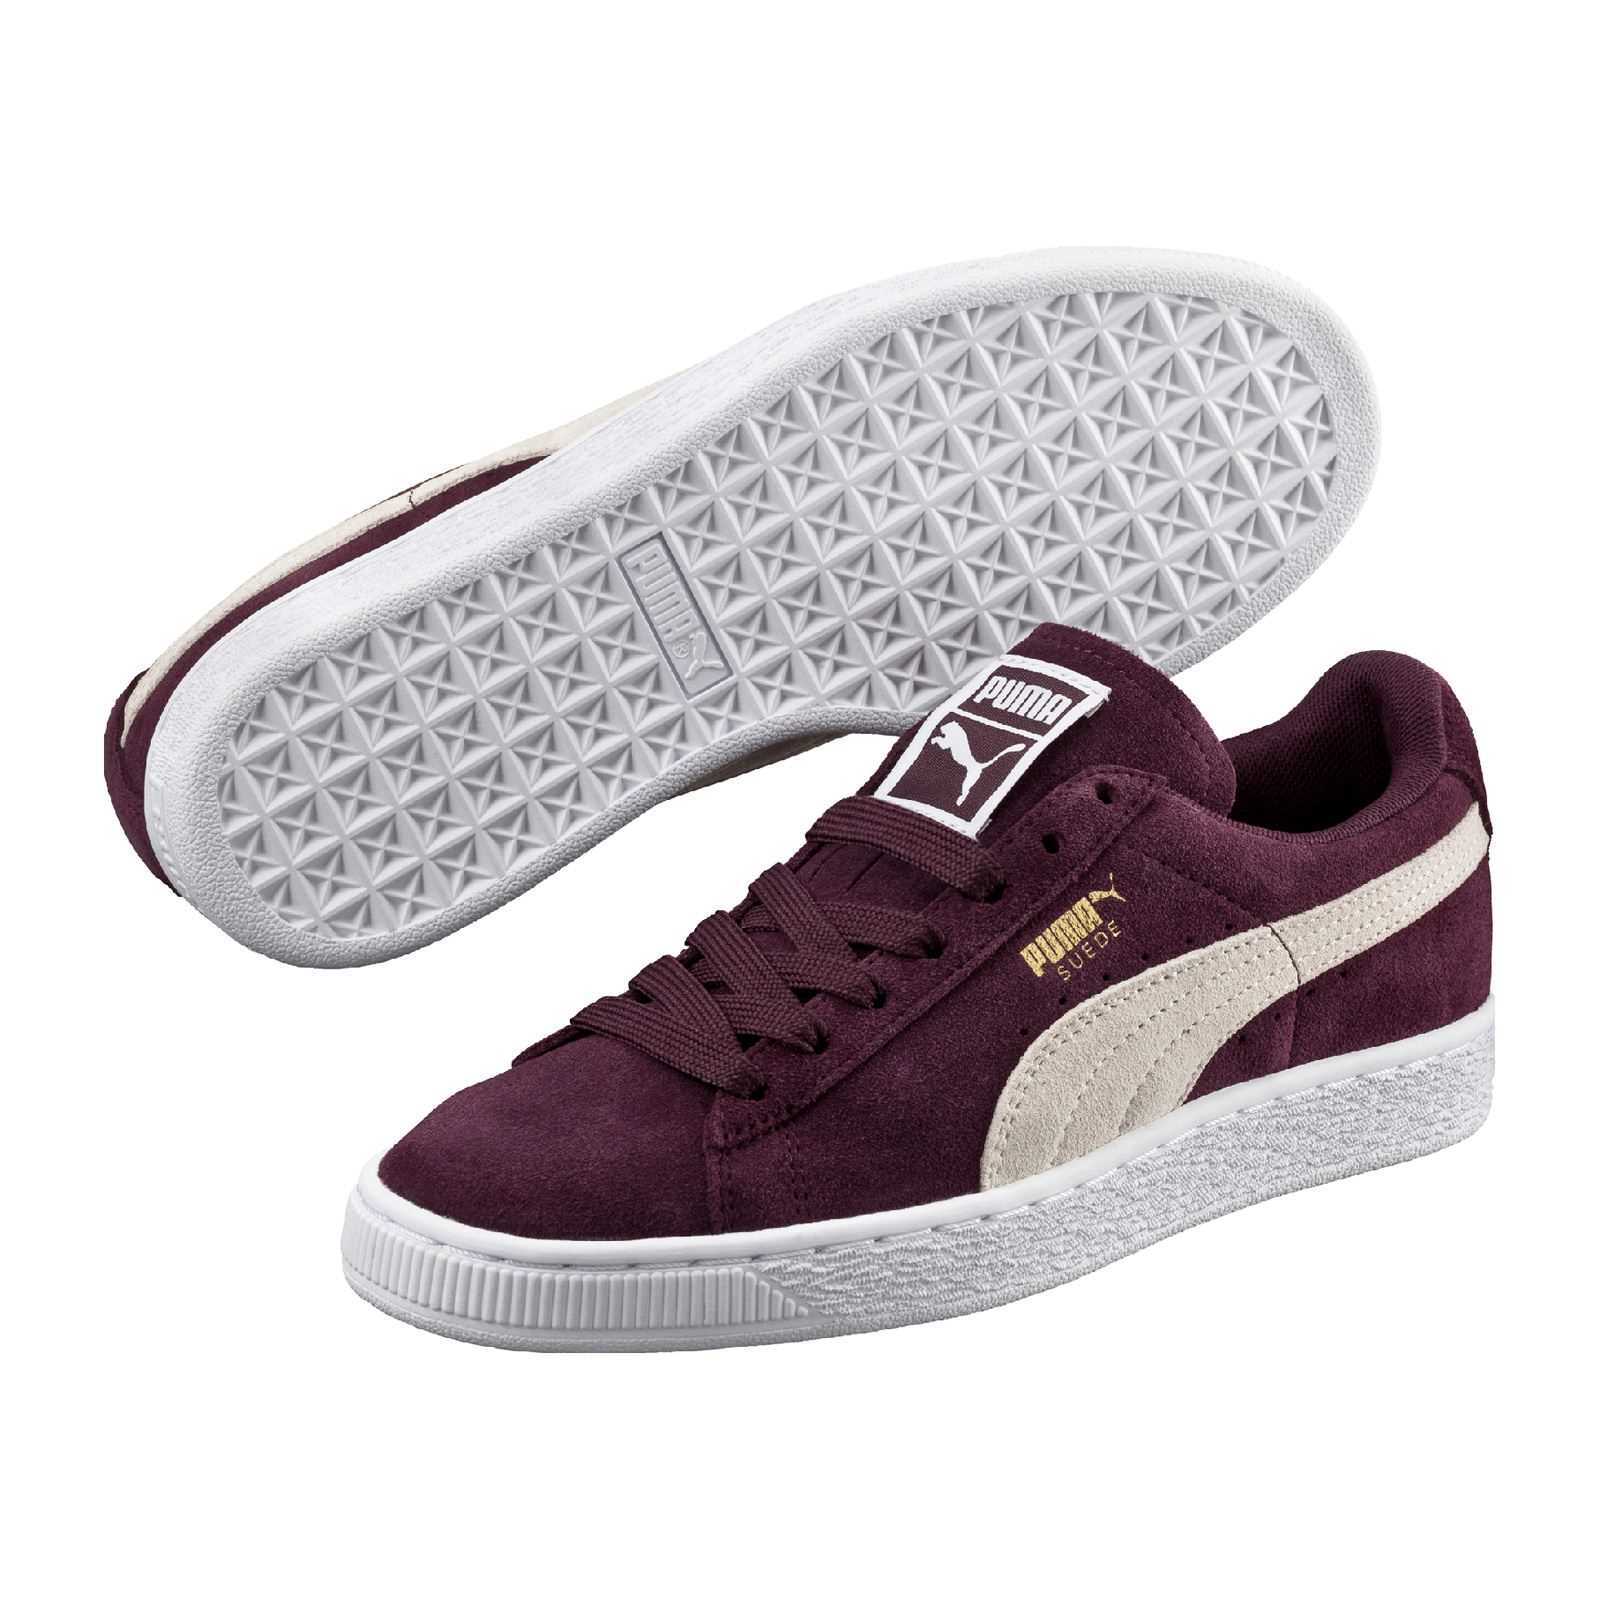 puma baskets en cuir bordeaux brandalley. Black Bedroom Furniture Sets. Home Design Ideas